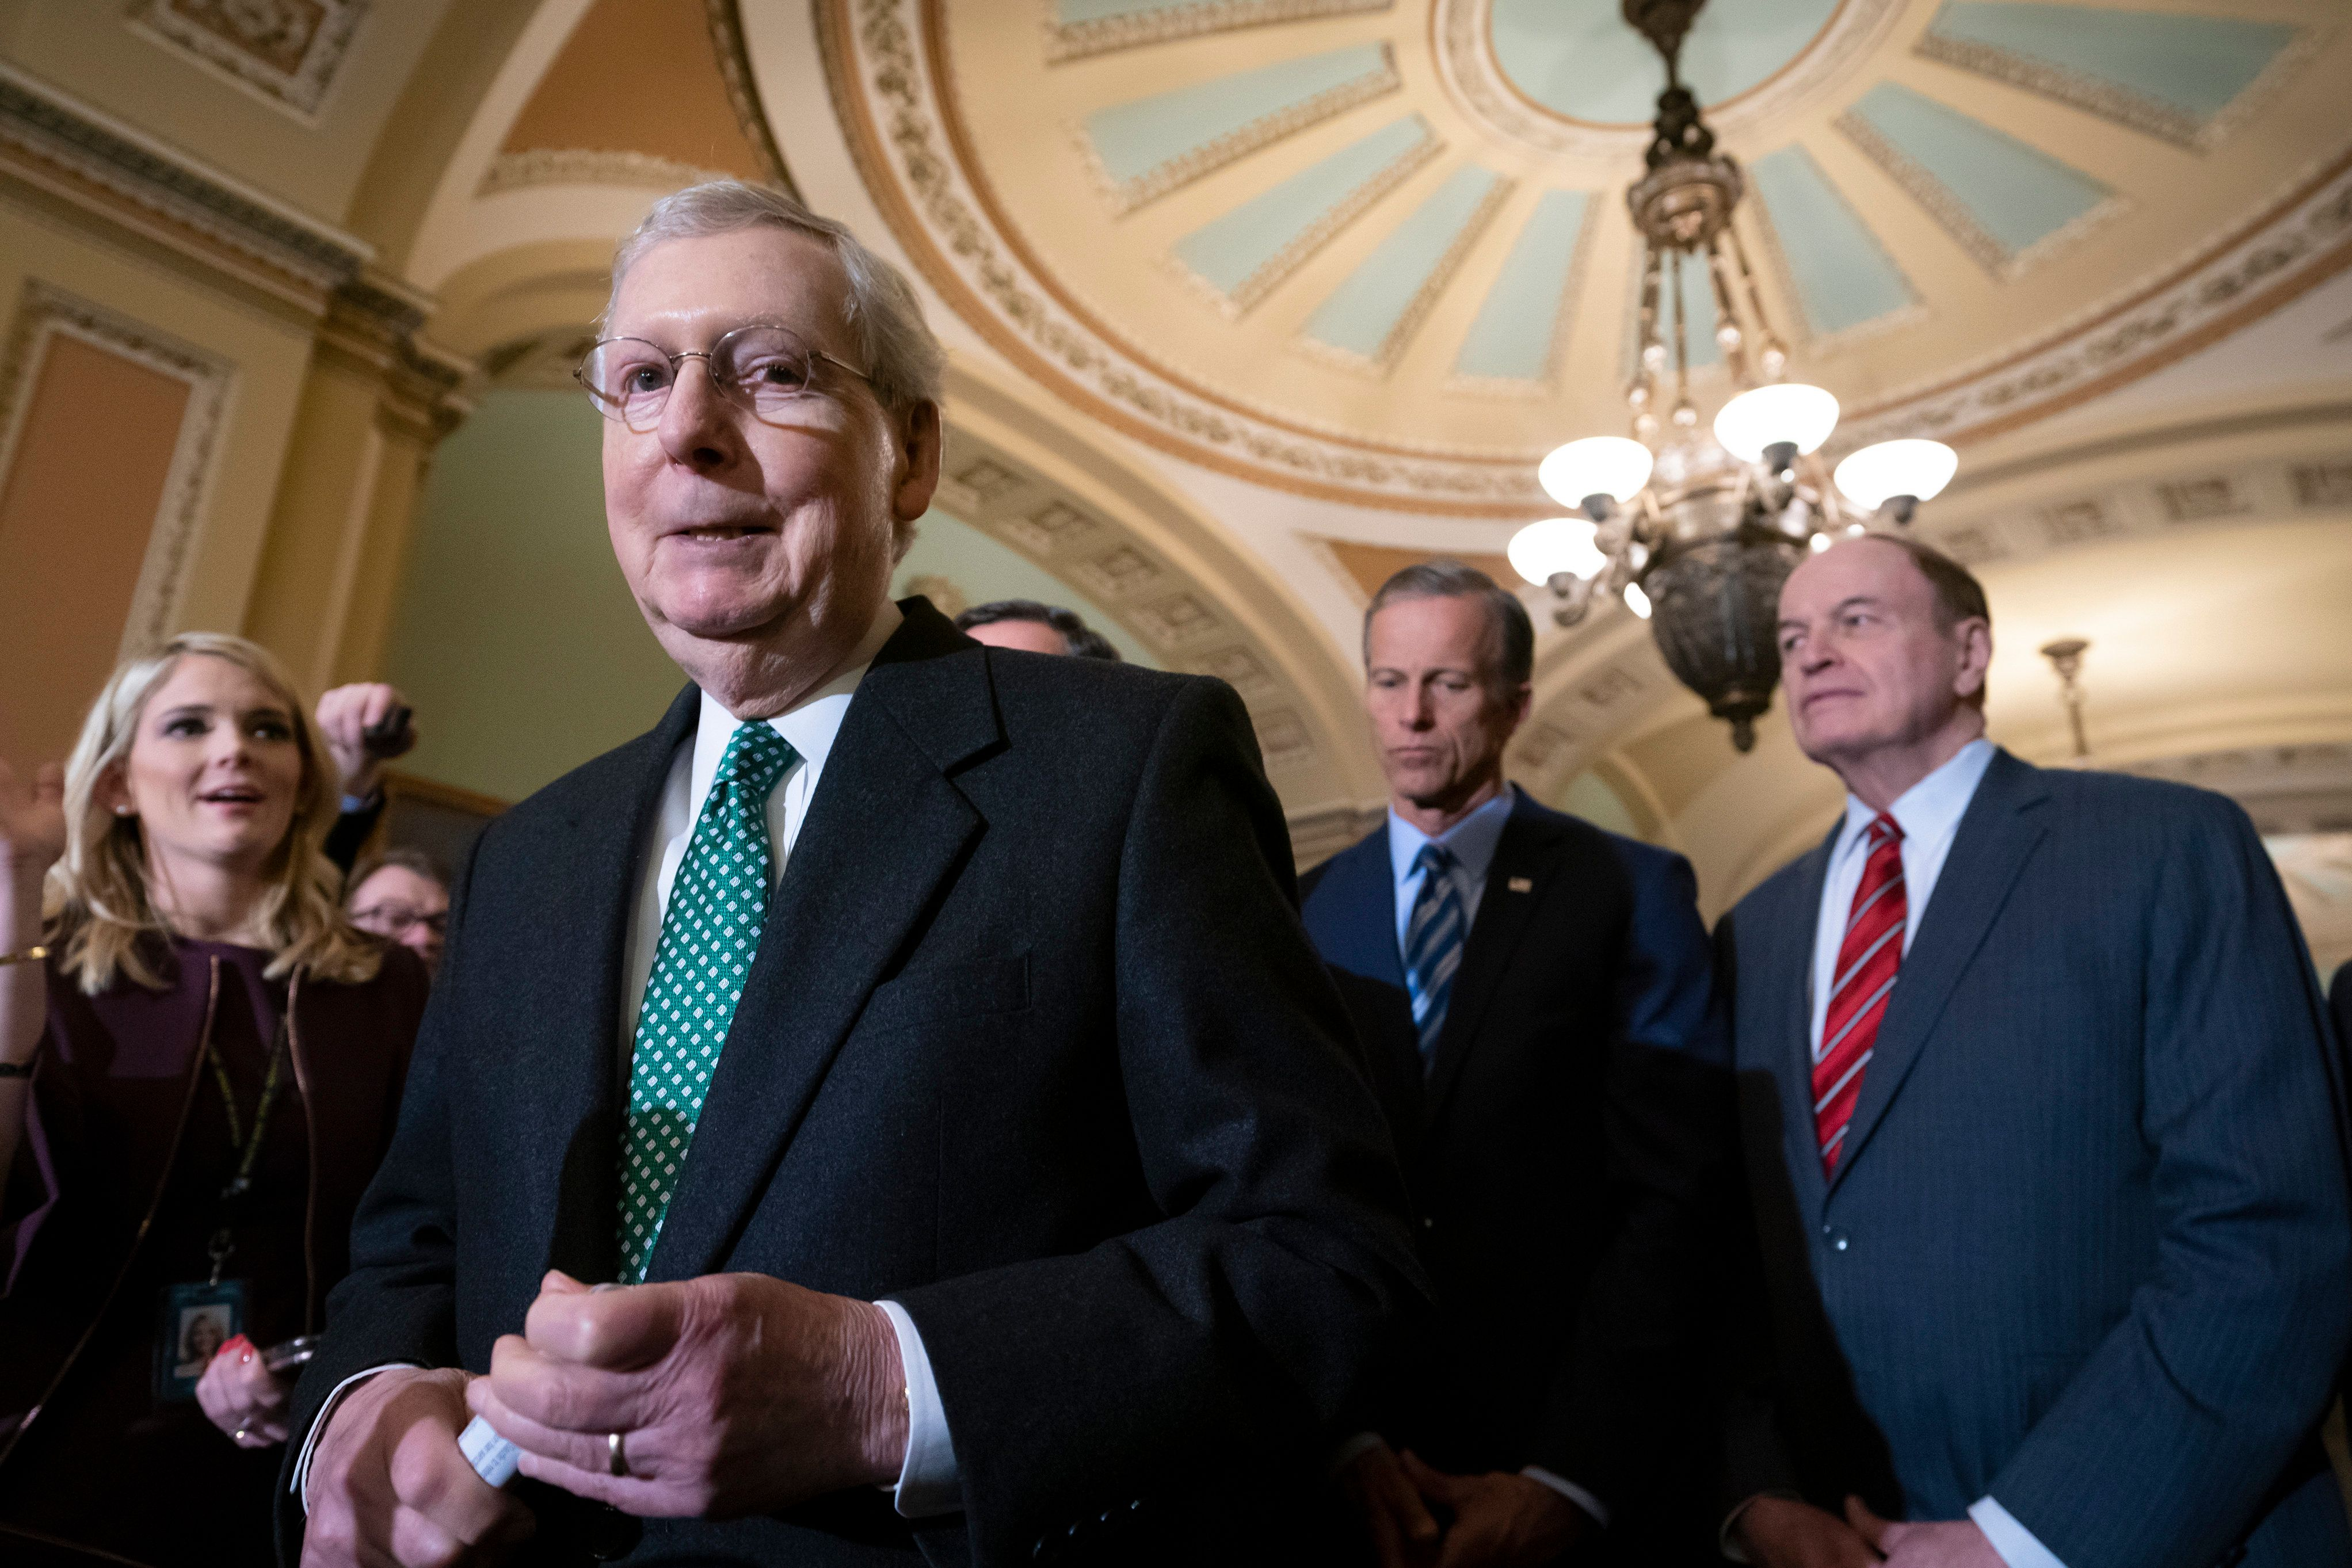 Sen. Mitch McConnell (R-Ky.) suggested Democrats were to blame for a recent case of election fraud in North Carolina.